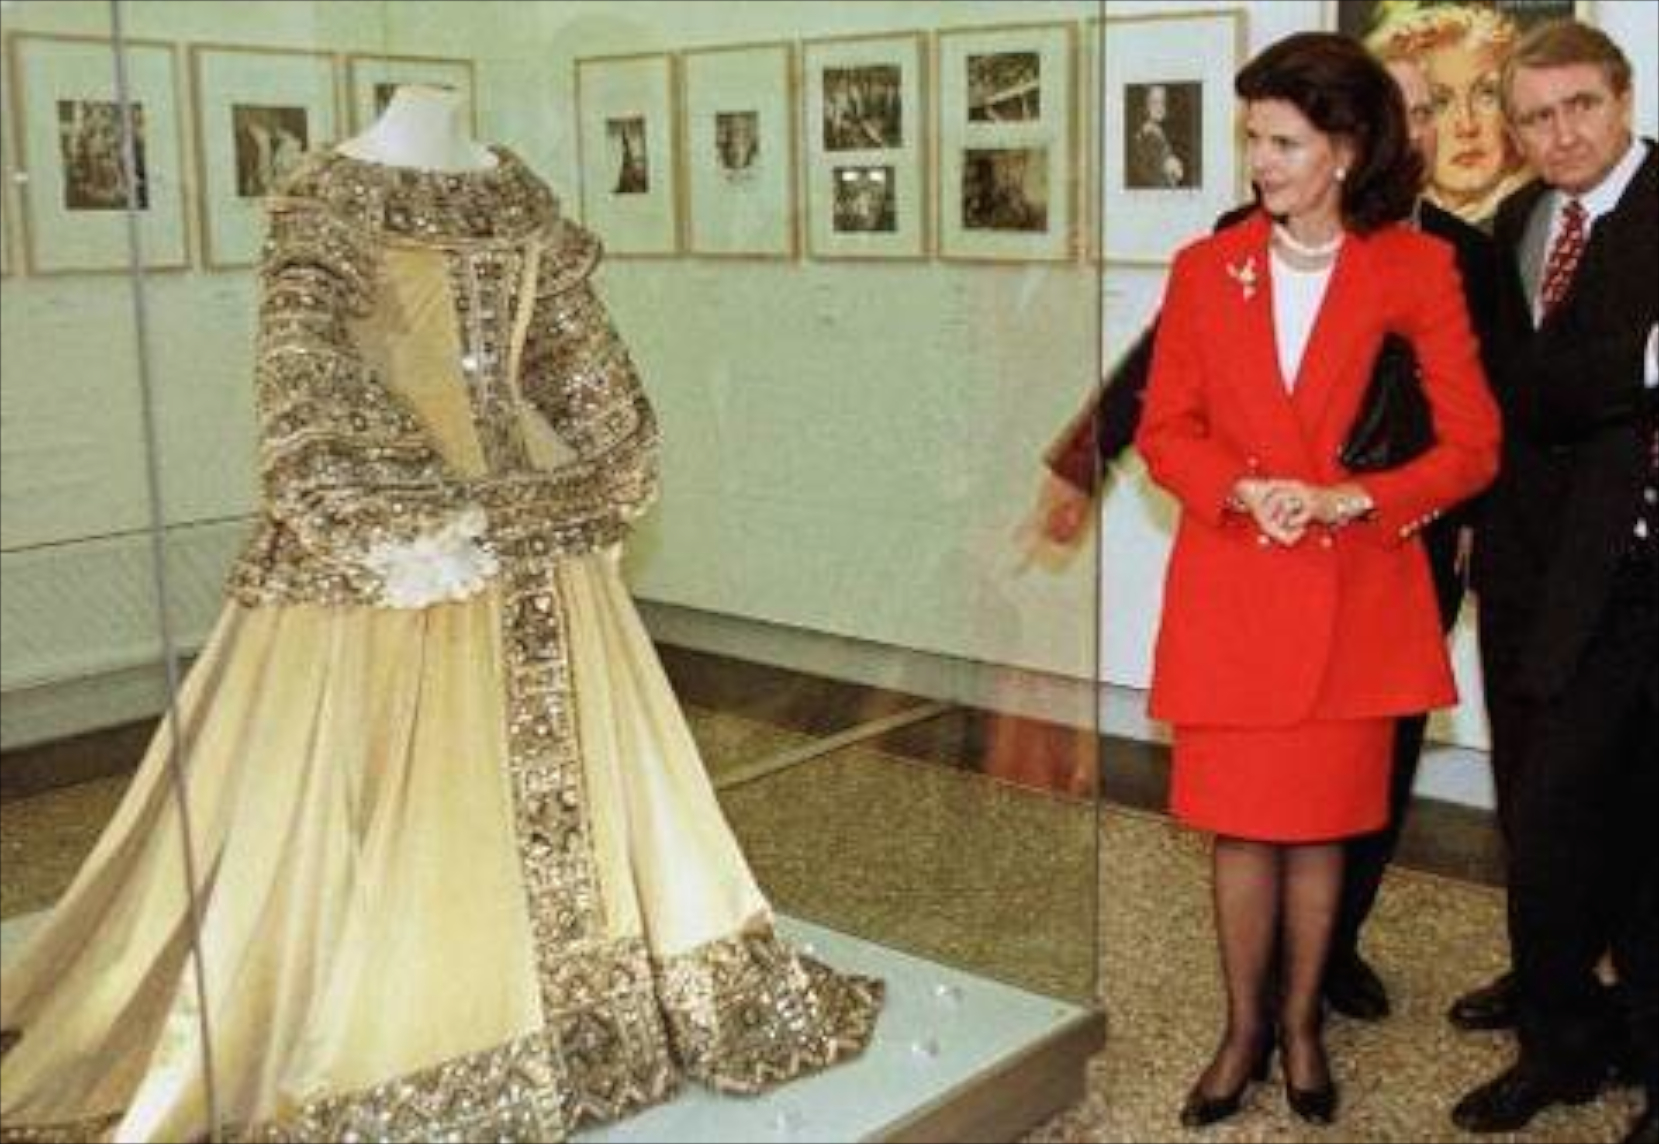 Greta Garbo gown on display while the Queen of Sweden visits the exhibit.